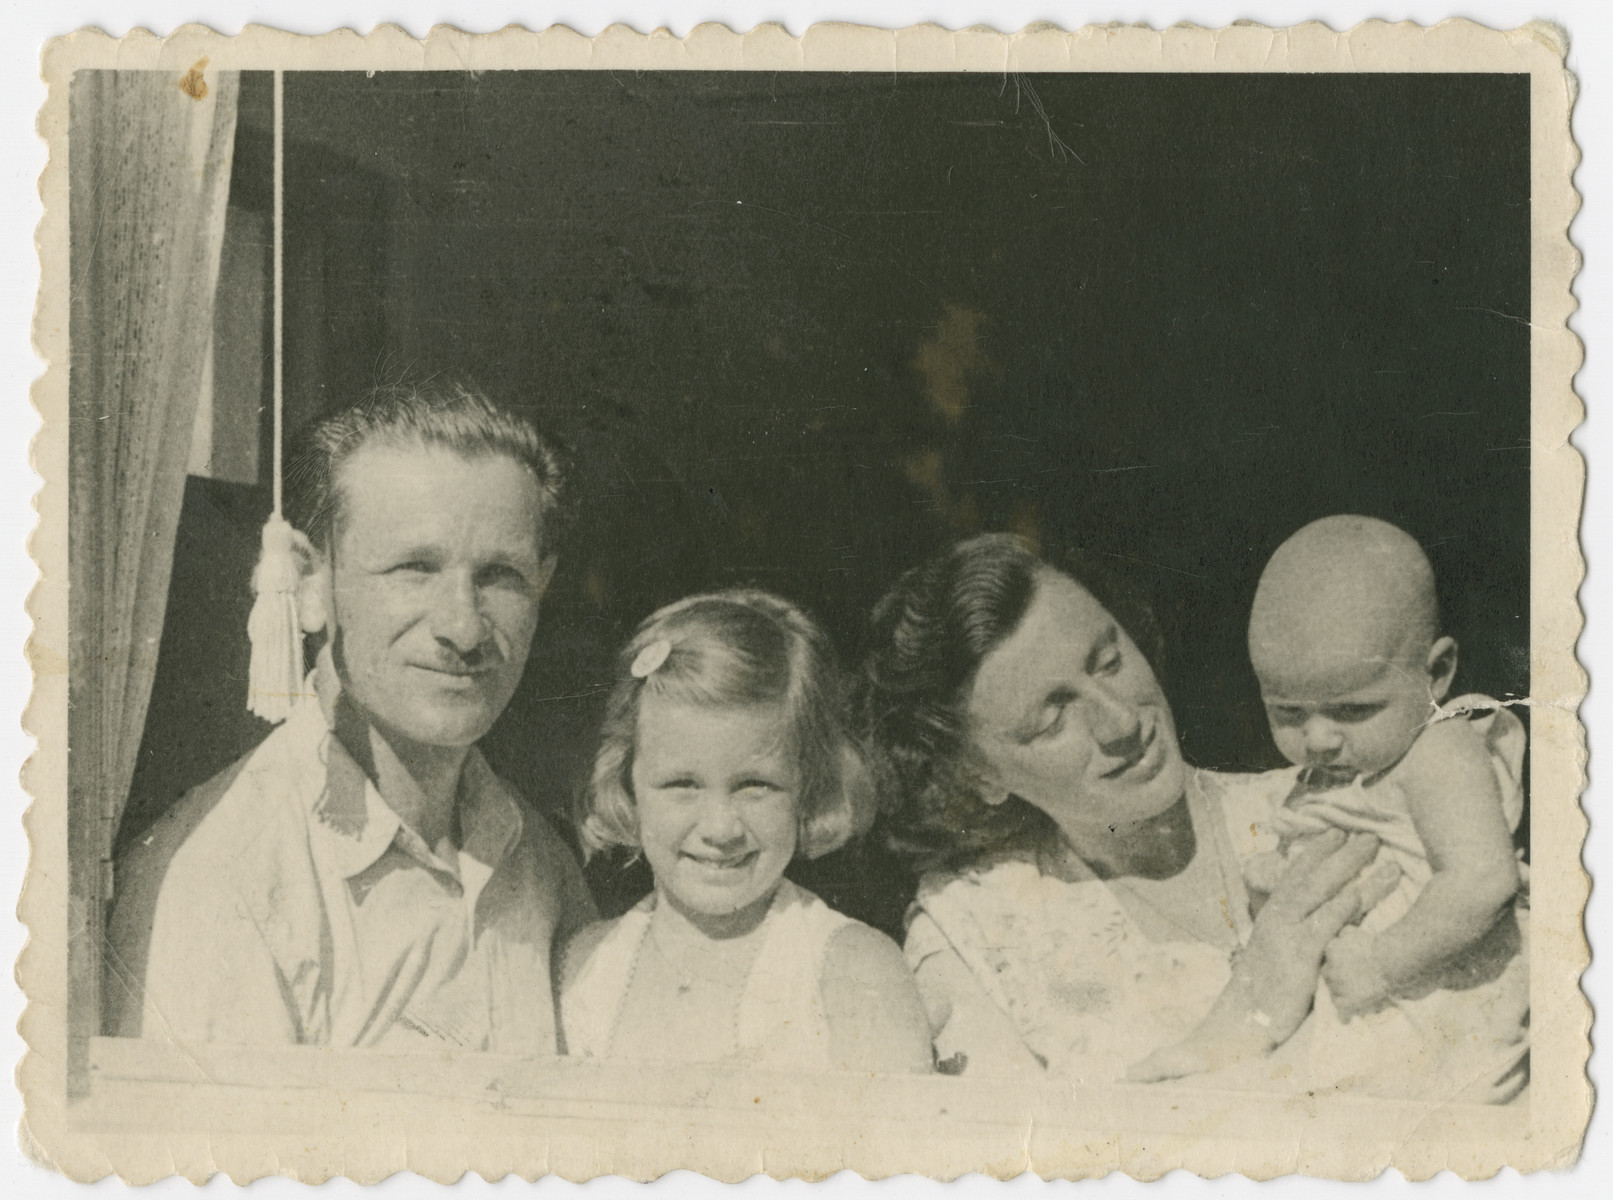 The family of Yehuda Bielski looks out the window of their home in Israel.  From left to right are Yehuda, Nili, Lola and Yigal Bielski.